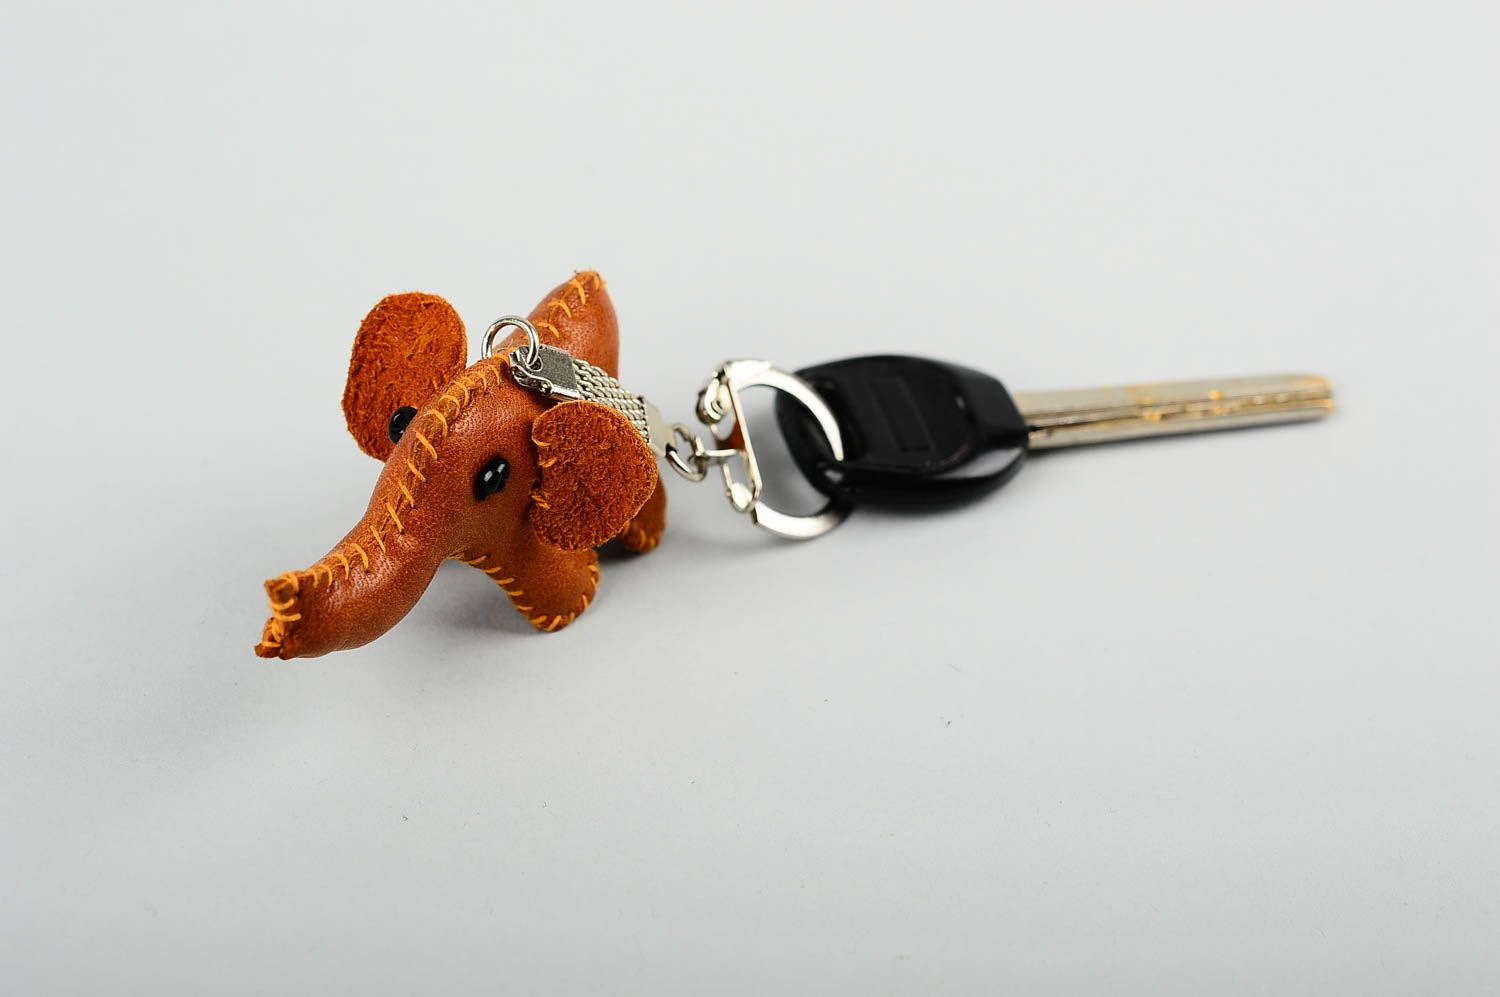 keychains Unusual handmade leather keychain cool keyrings leather goods gift ideas - MADEheart.com